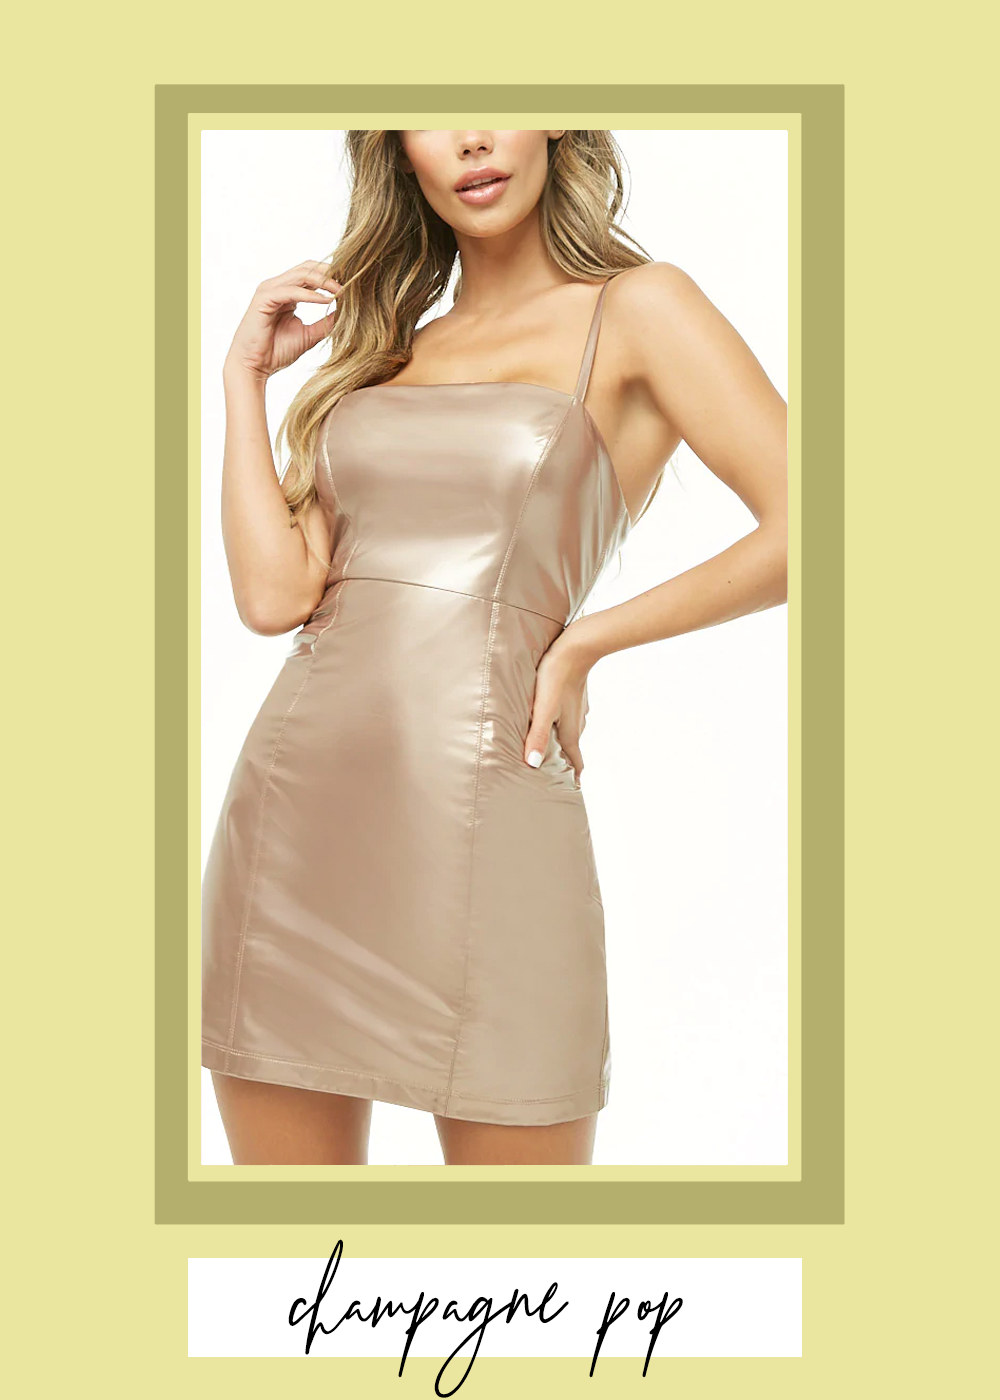 006. - Metallic Faux Patent Leather Mini DressForever 21 // $25